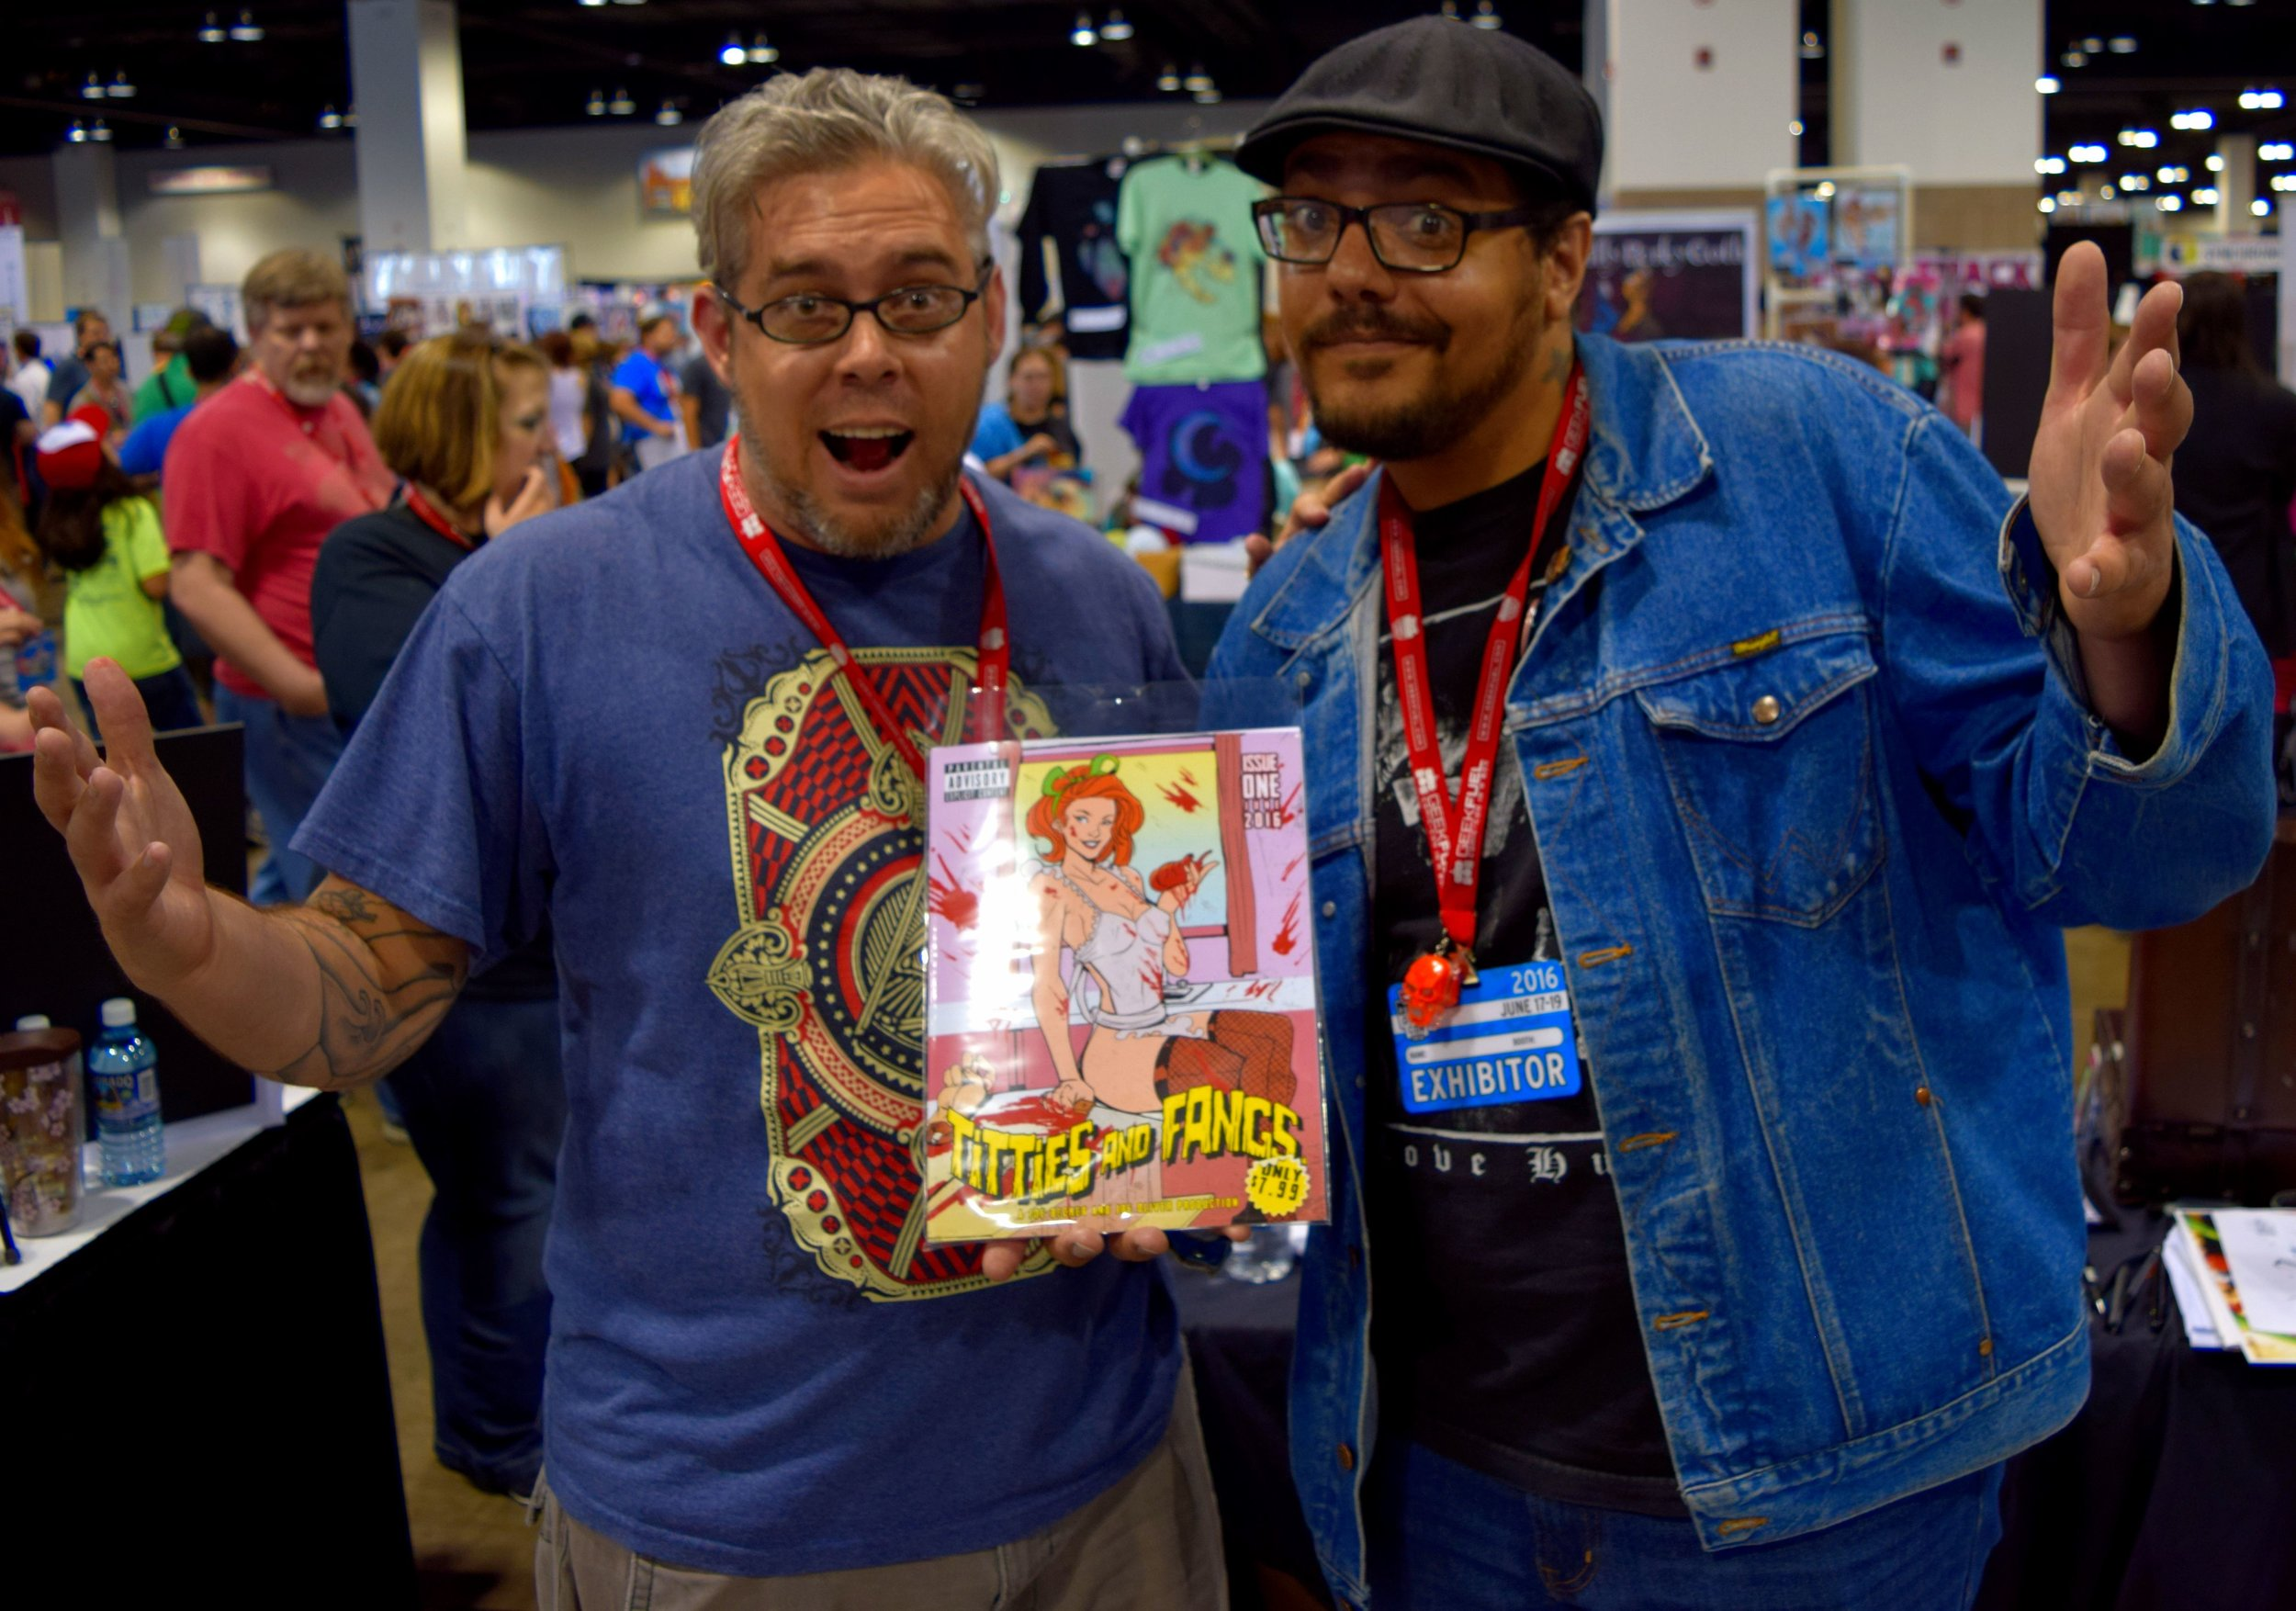 An Interview With Joe Becker and Joe Oliver about Titties and Fangs (Denver Comic Con 2016)   Written by Neil Greenaway